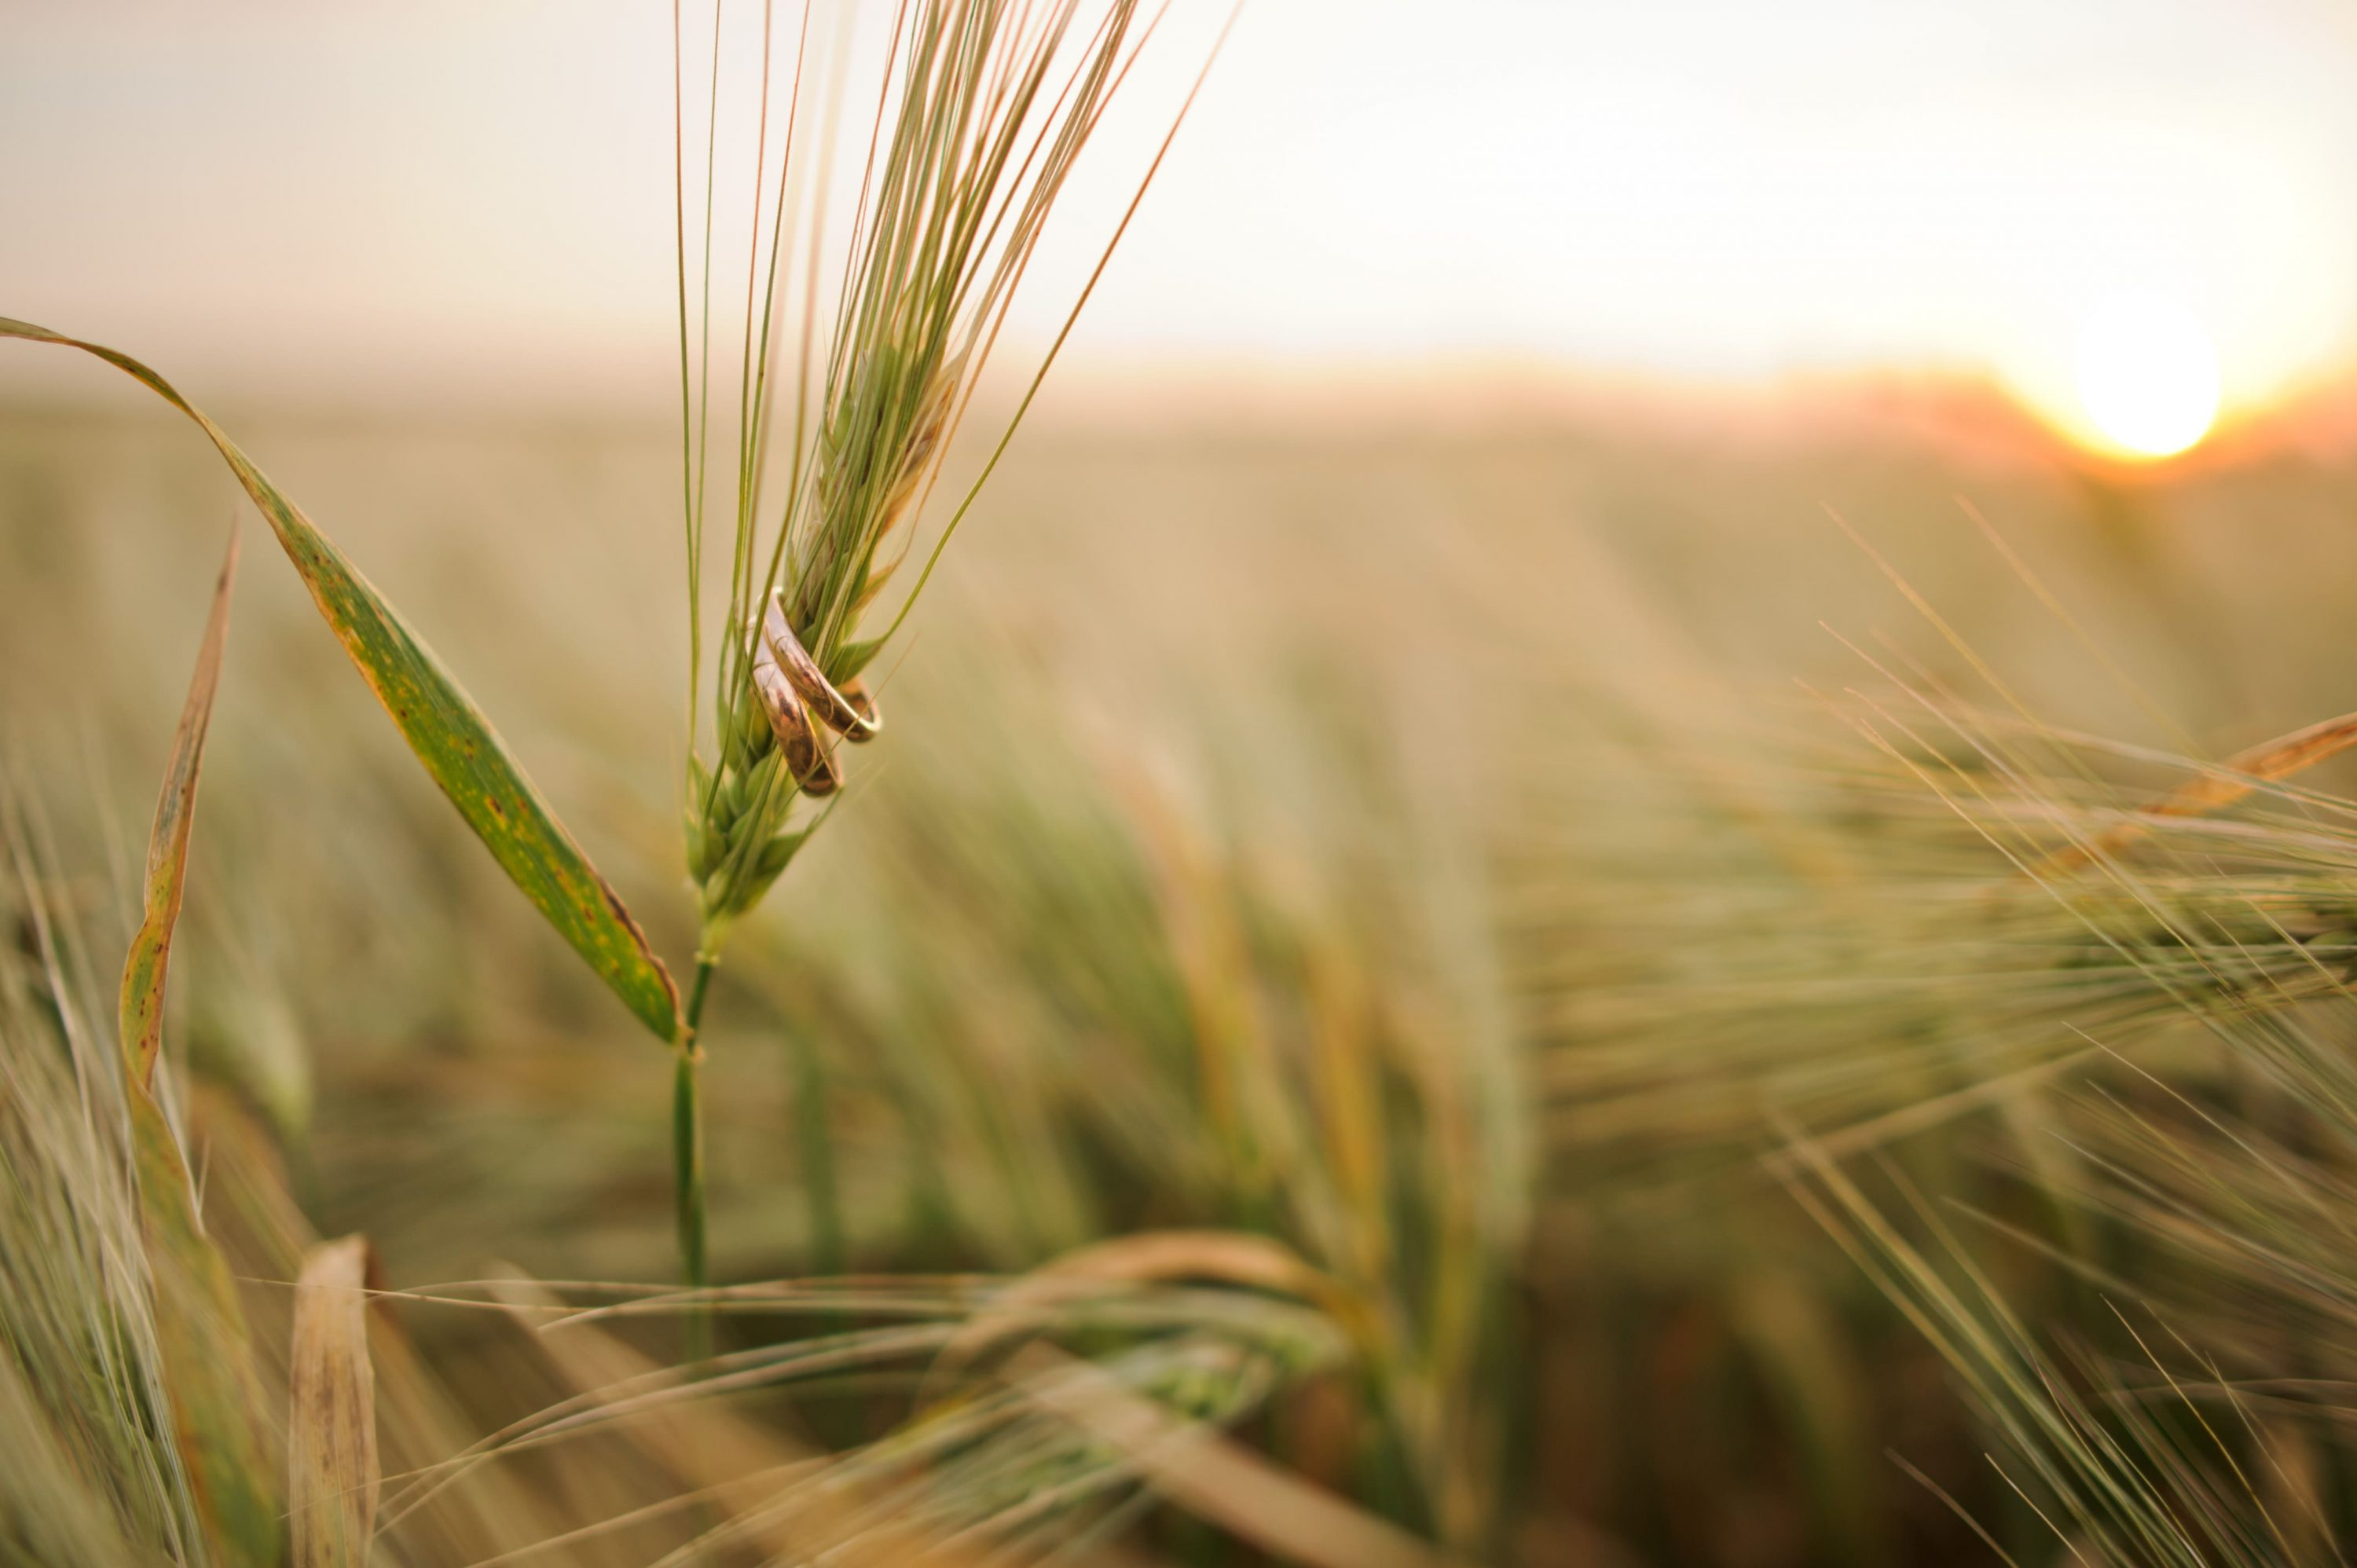 Wedding Rings on a Spikelet of Wheat Photo.